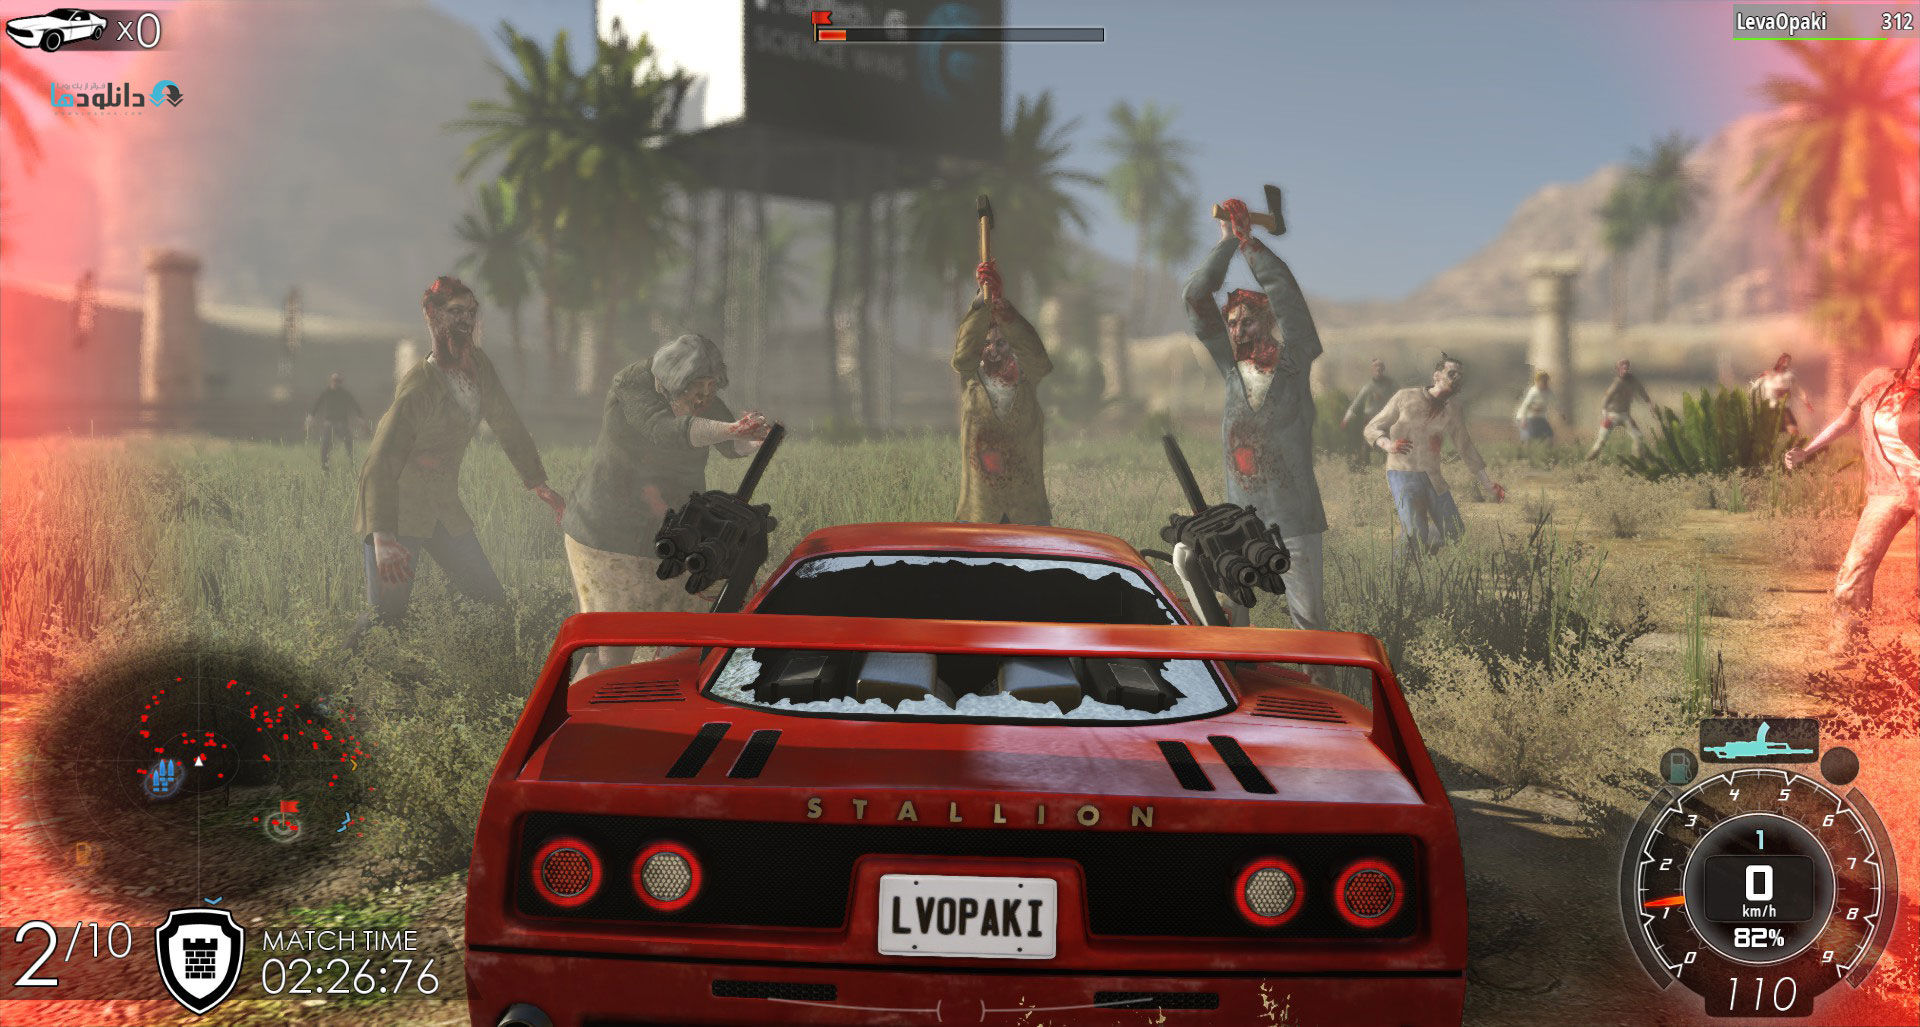 http://img5.downloadha.com/hosein/Game/February%202015/17/Gas-Guzzlers-Extreme-Full-Metal-Zombie-screenshots-01-large.jpg